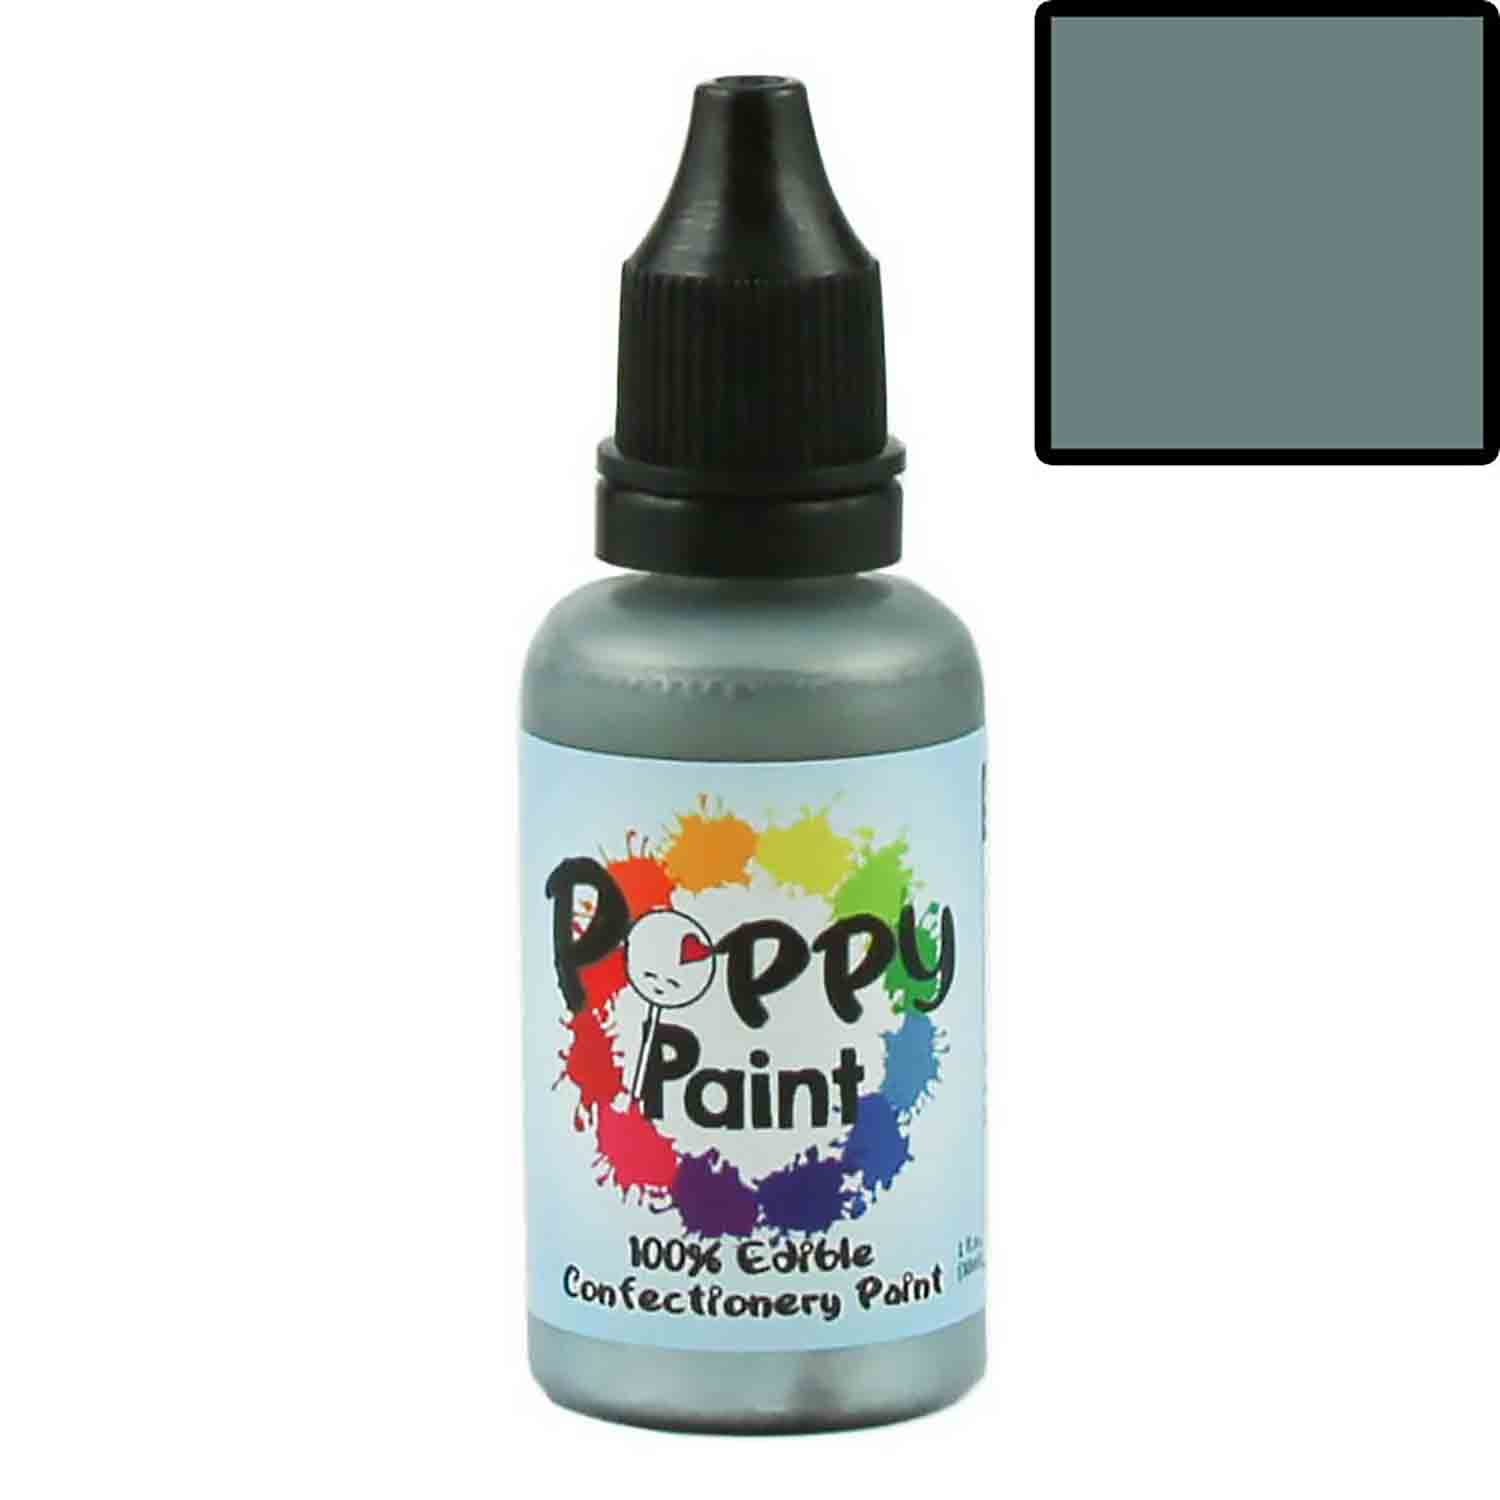 Gray Poppy Paint 100% Edible Confectionery Paint